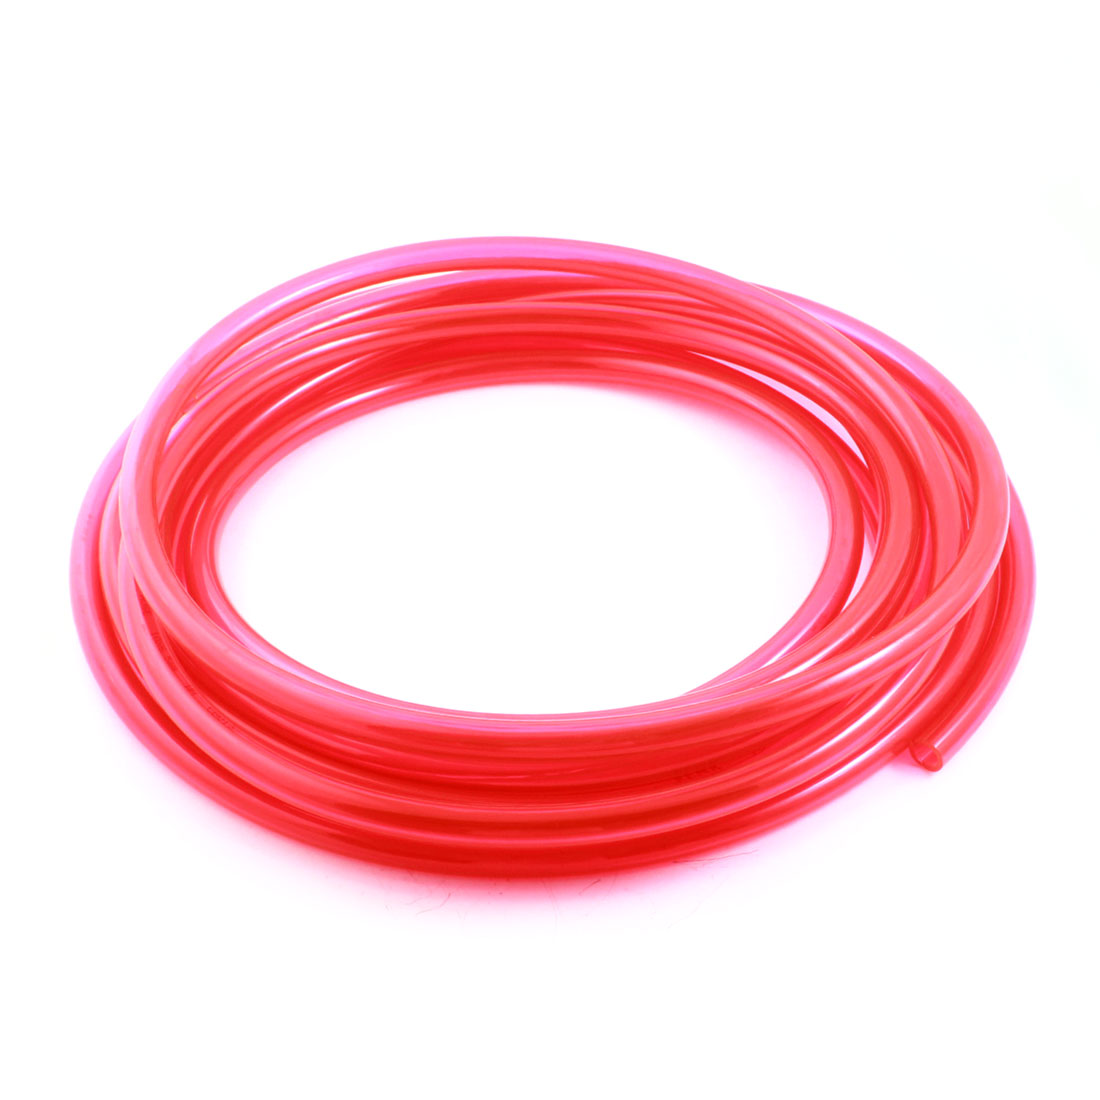 5M 6.5x10mm Air Compressor Fuel Gas Petrol Diesel PU Line Tube Hose Clear Red